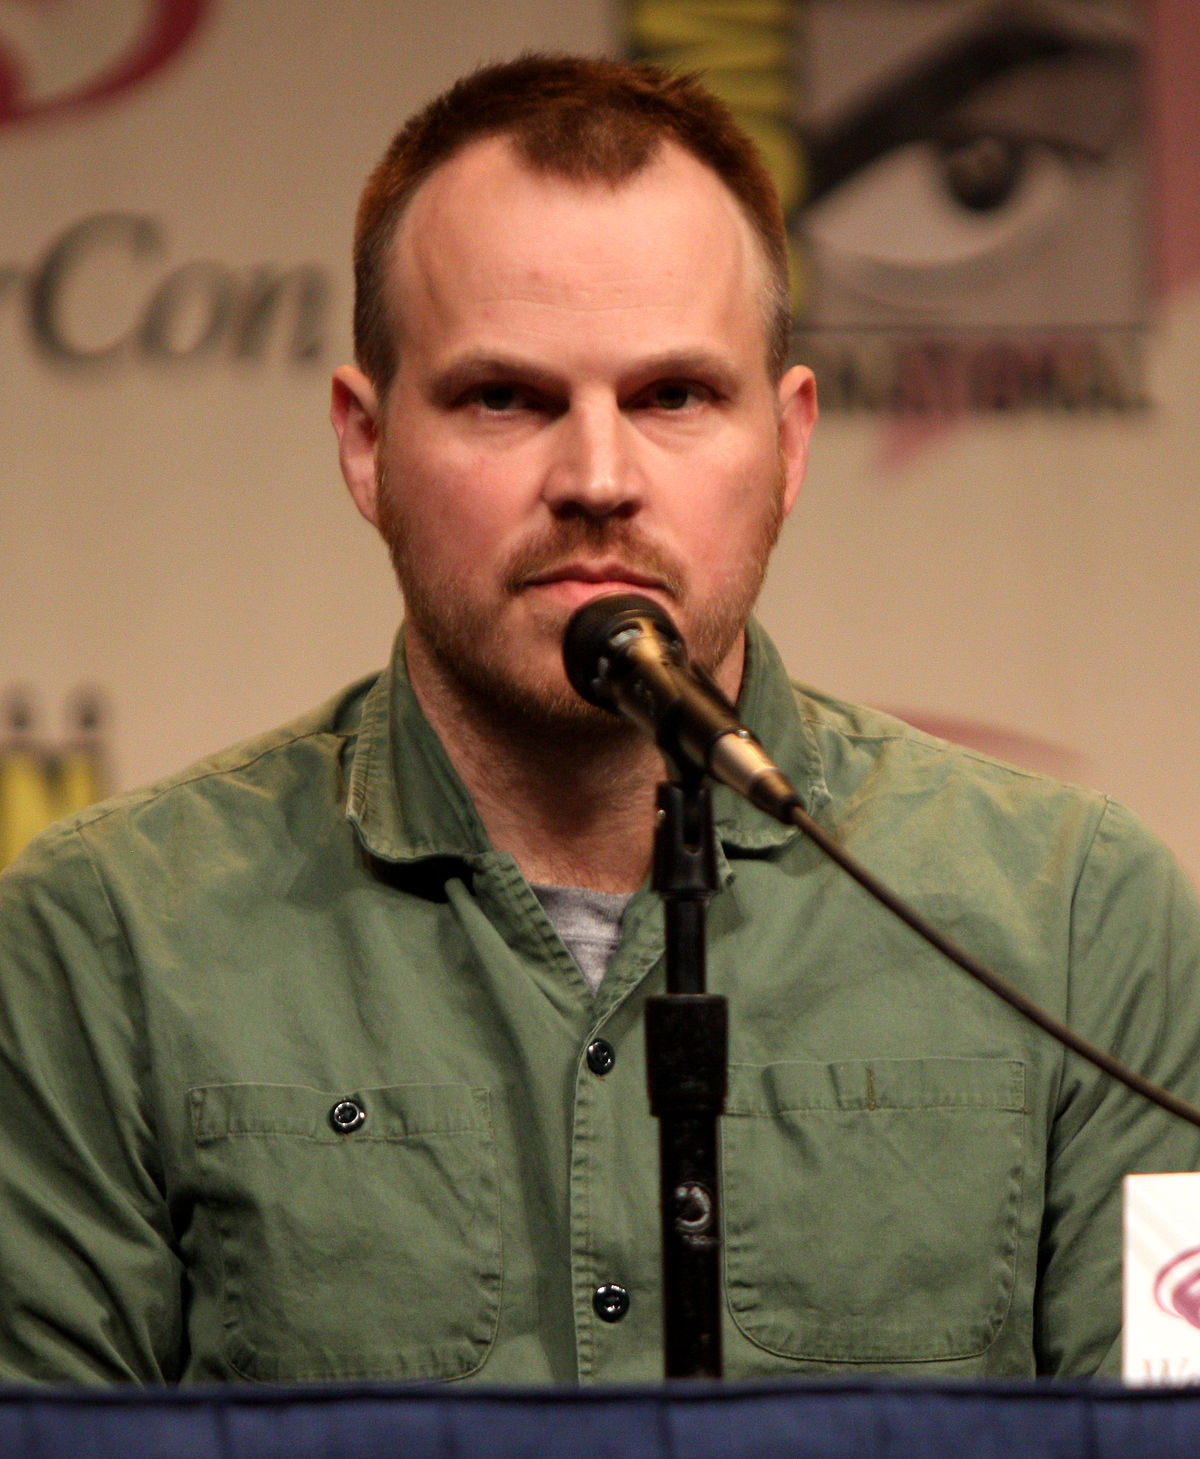 marc webb 'gifted'marc webb twitter, marc webb dad 2.0 summit, marc webb interview, marc webb cbs, marc webb facebook, marc webb, marc webb imdb, marc webb director, marc webb 'gifted', marc webb net worth, marc webb wiki, instagram mark webb, marc webb my chemical romance, marc webb limitless, mark webb bmx, marc webb movies, marc webb spider man 3, marc webb music videos, marc webb vs sam raimi, marc webb 500 days of summer